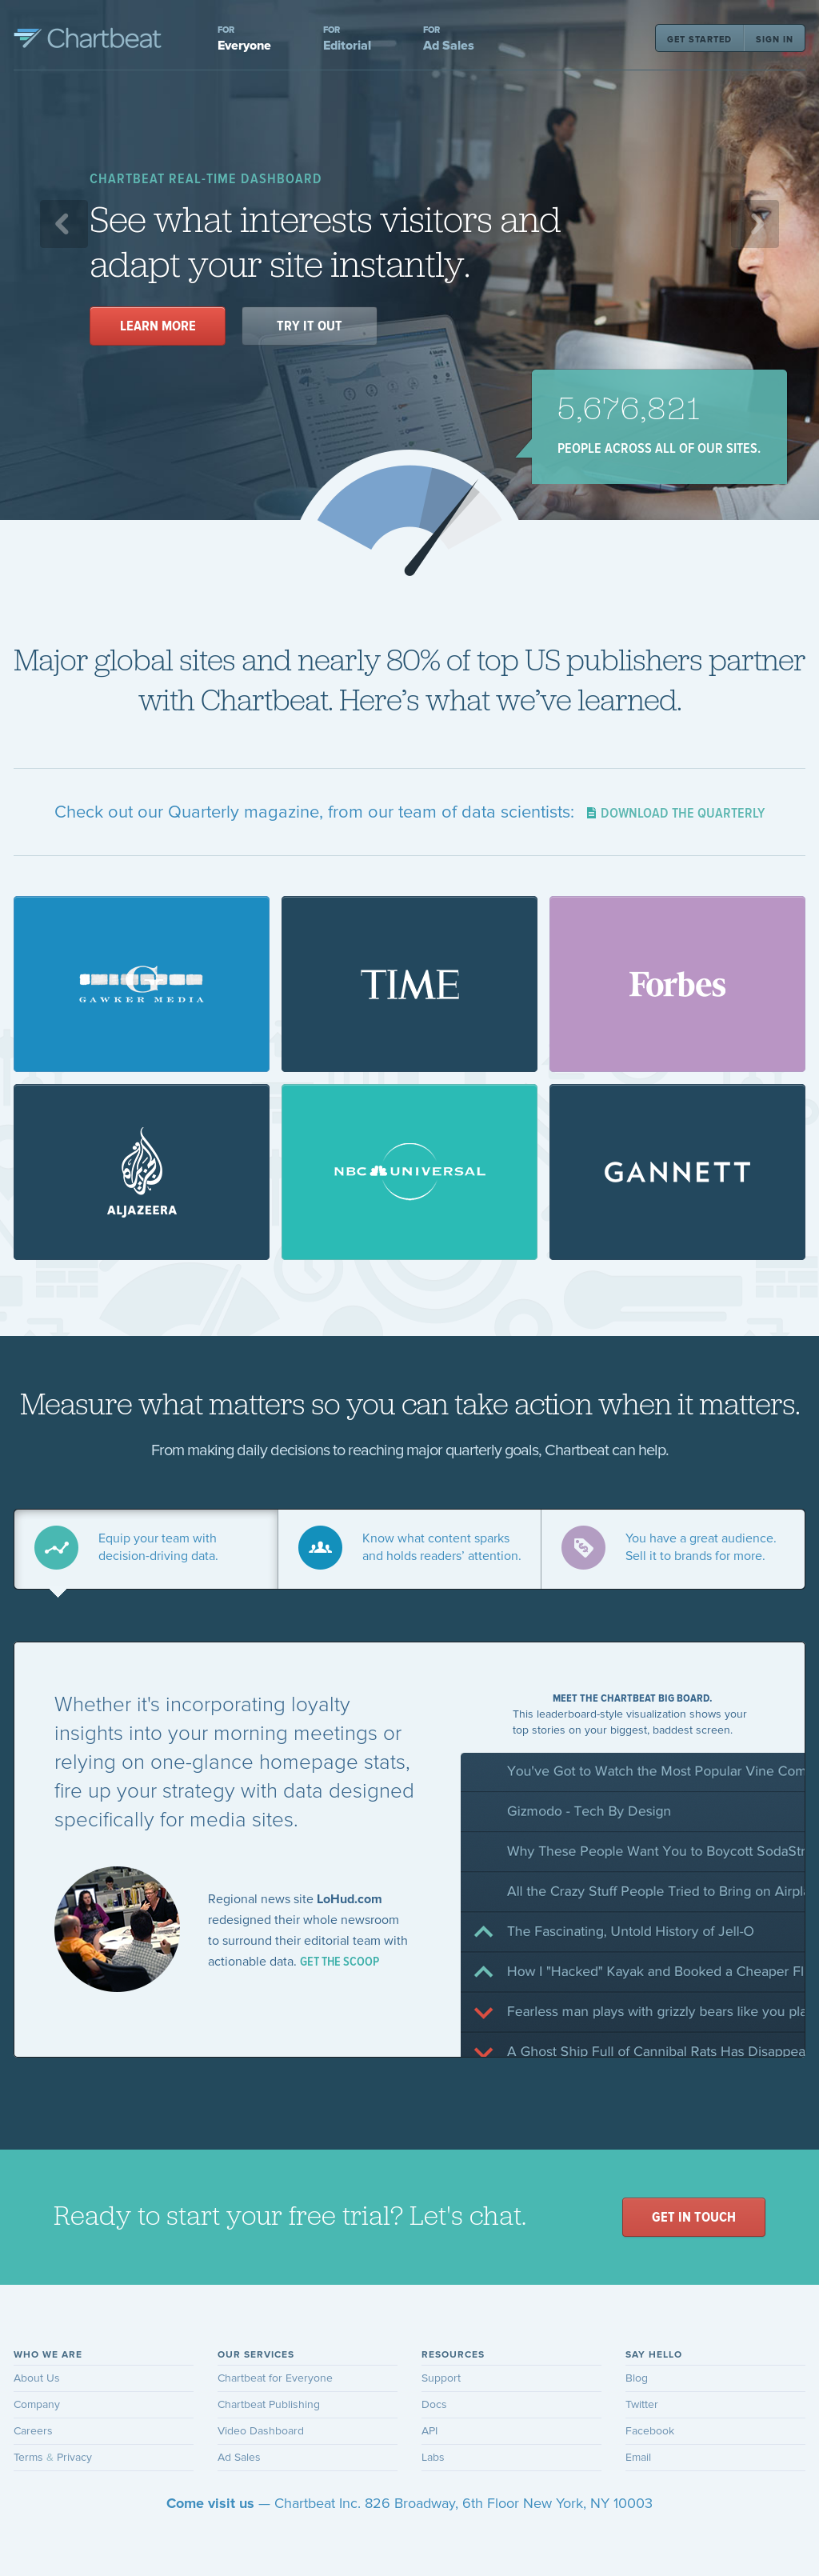 Chartbeat Competitors, Revenue and Employees - Owler Company Profile